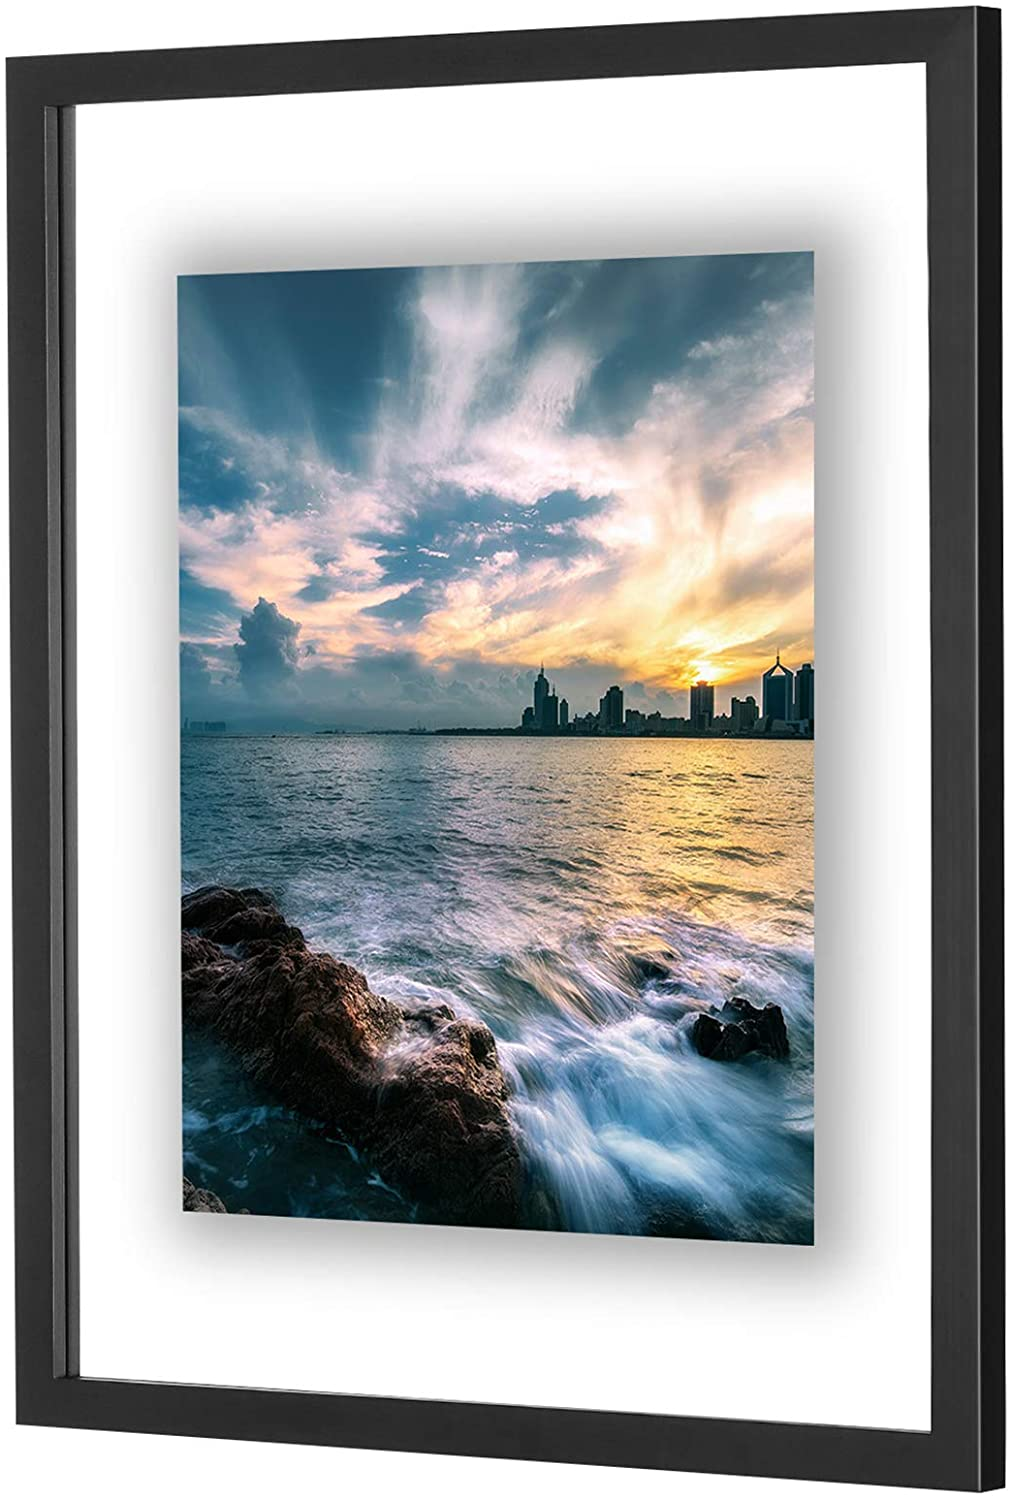 ONE WALL 16x20 Inch Floating Frame, Black Wood Double Glass Float Picture Frame Display 16x20/11x14 Inch Photos or Plant or Petal Specimens for Wall Hanging - Mounting Accessories Included